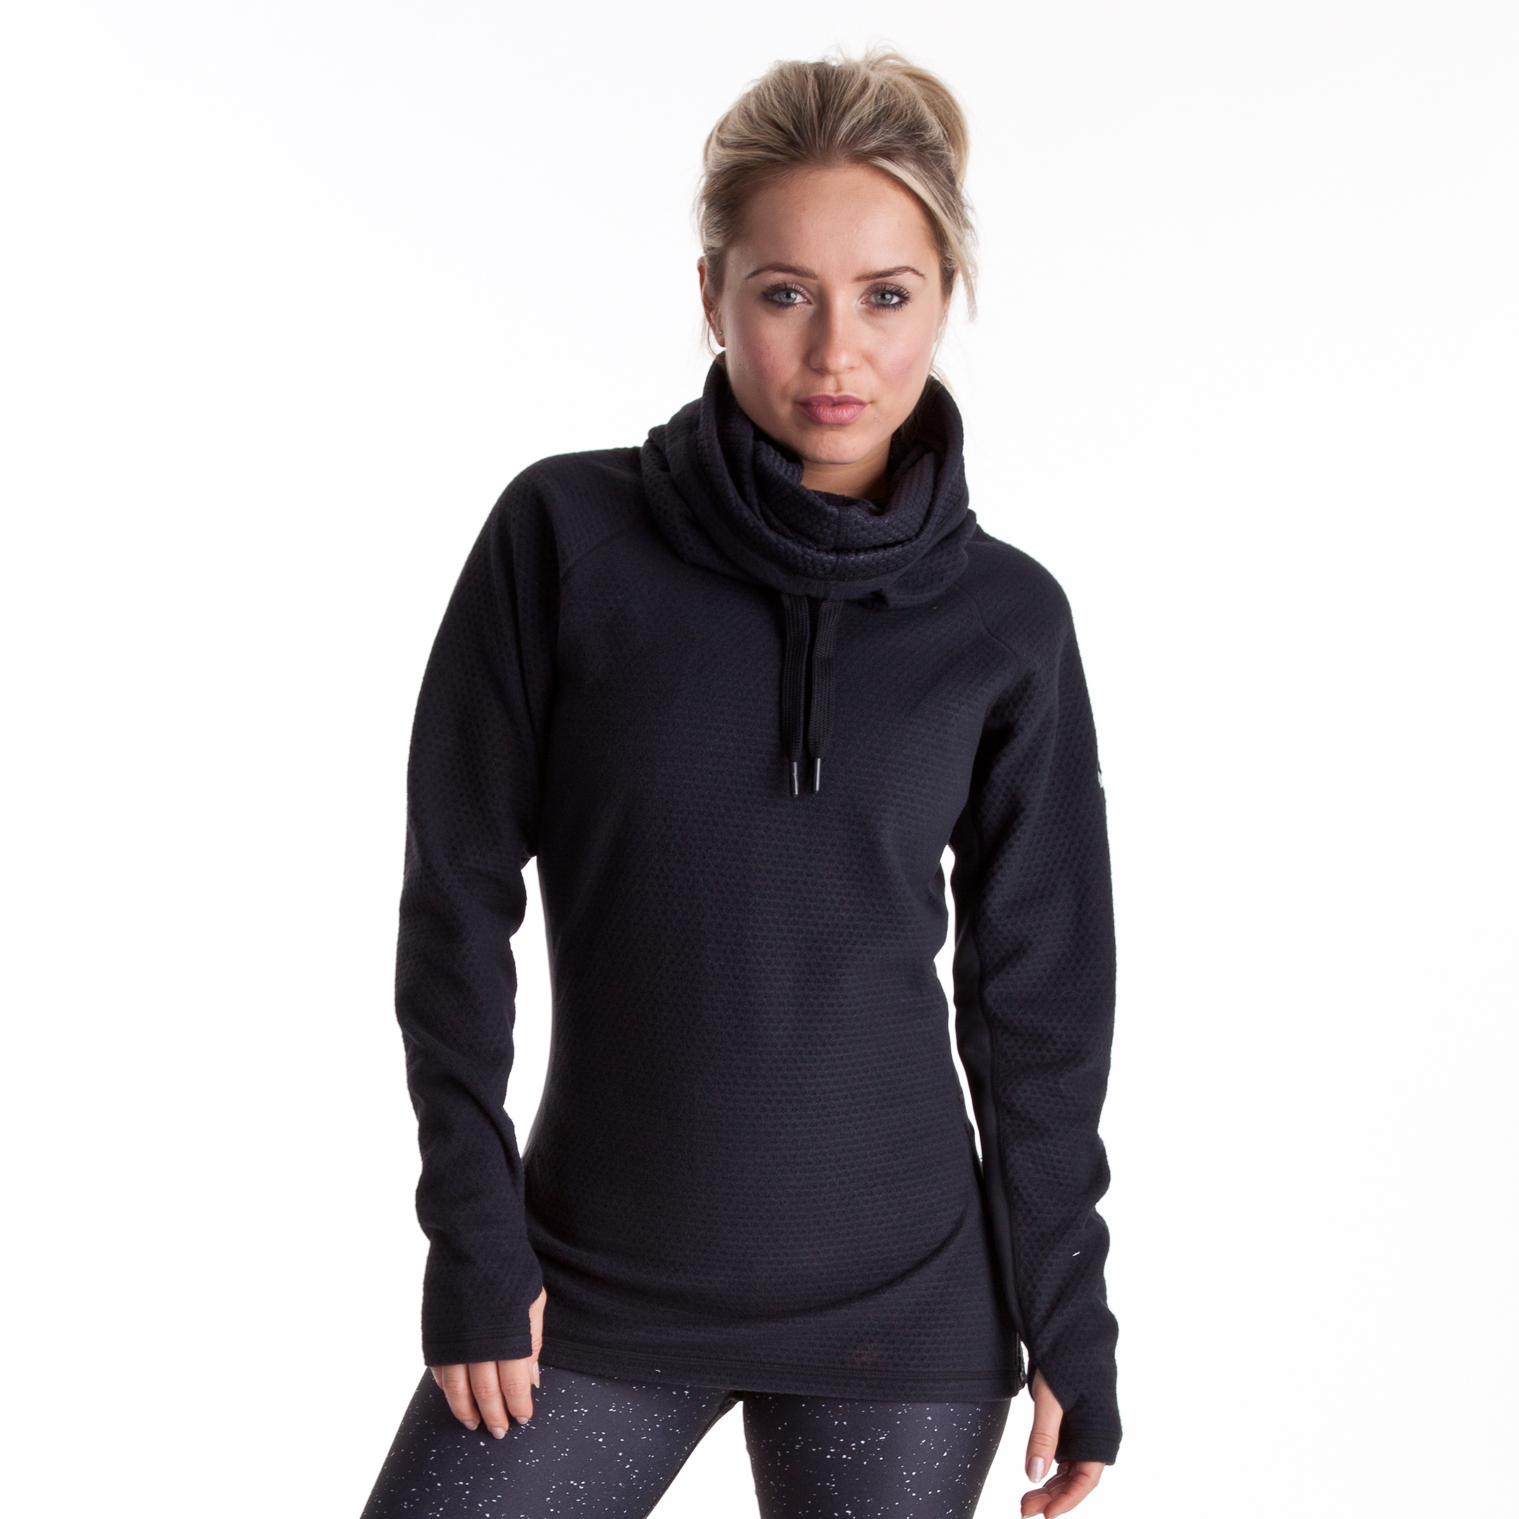 Nike Slouchy Sphere Hoody - Black/White - Womens